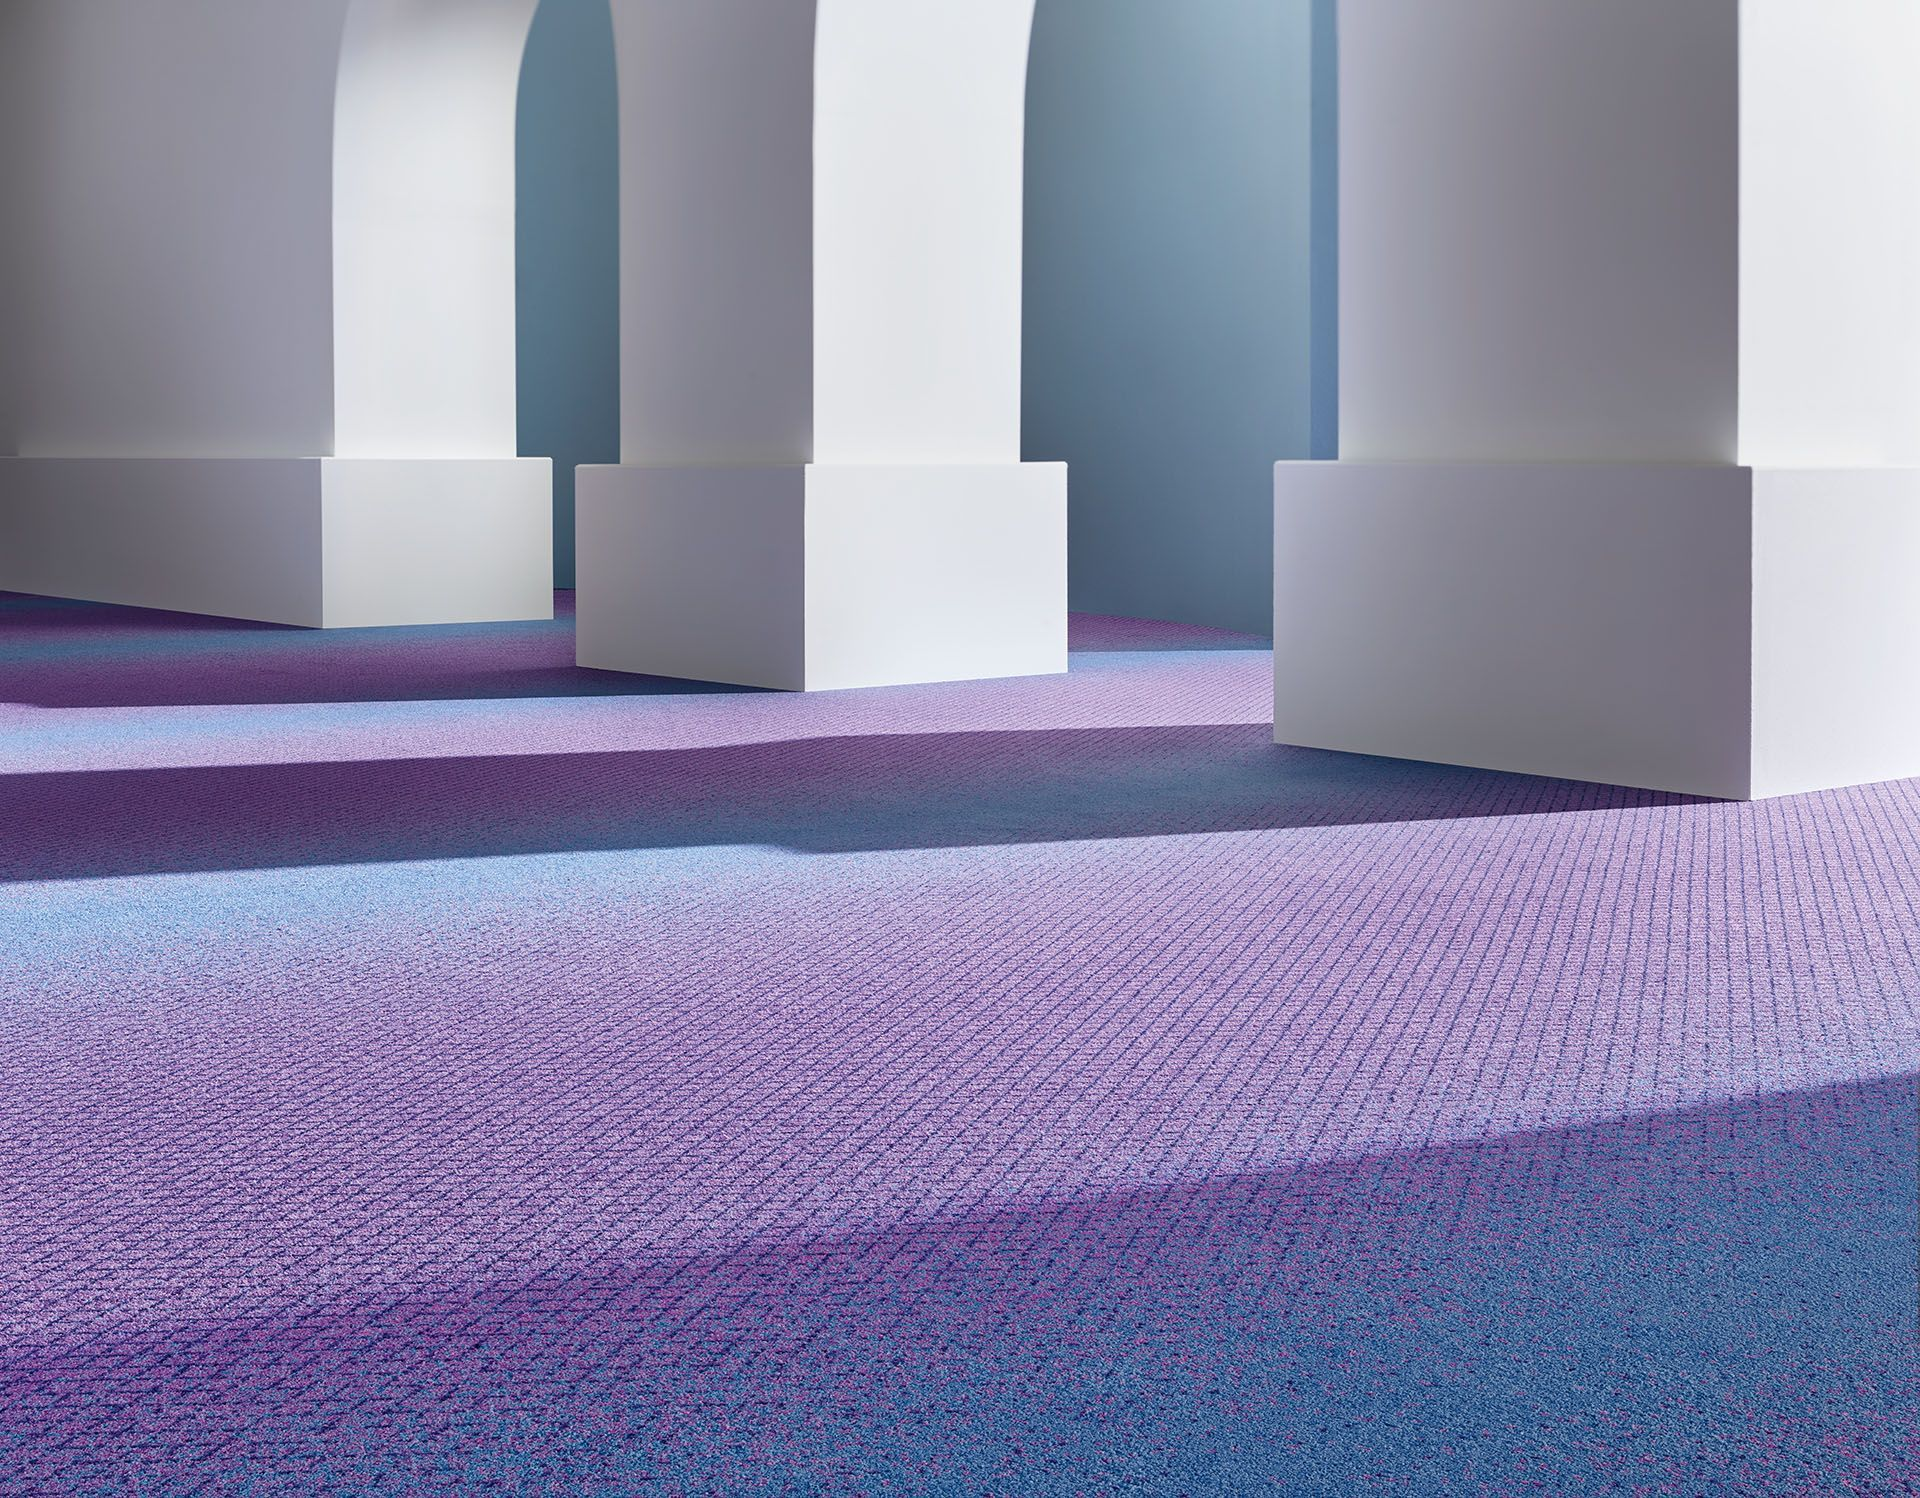 Design Meets Performance Low Emission Suitable For Allergy Sufferers Acoustic Air Filtering And Dust Binding Https Interiorpark Com En Flooring Superior In 2020